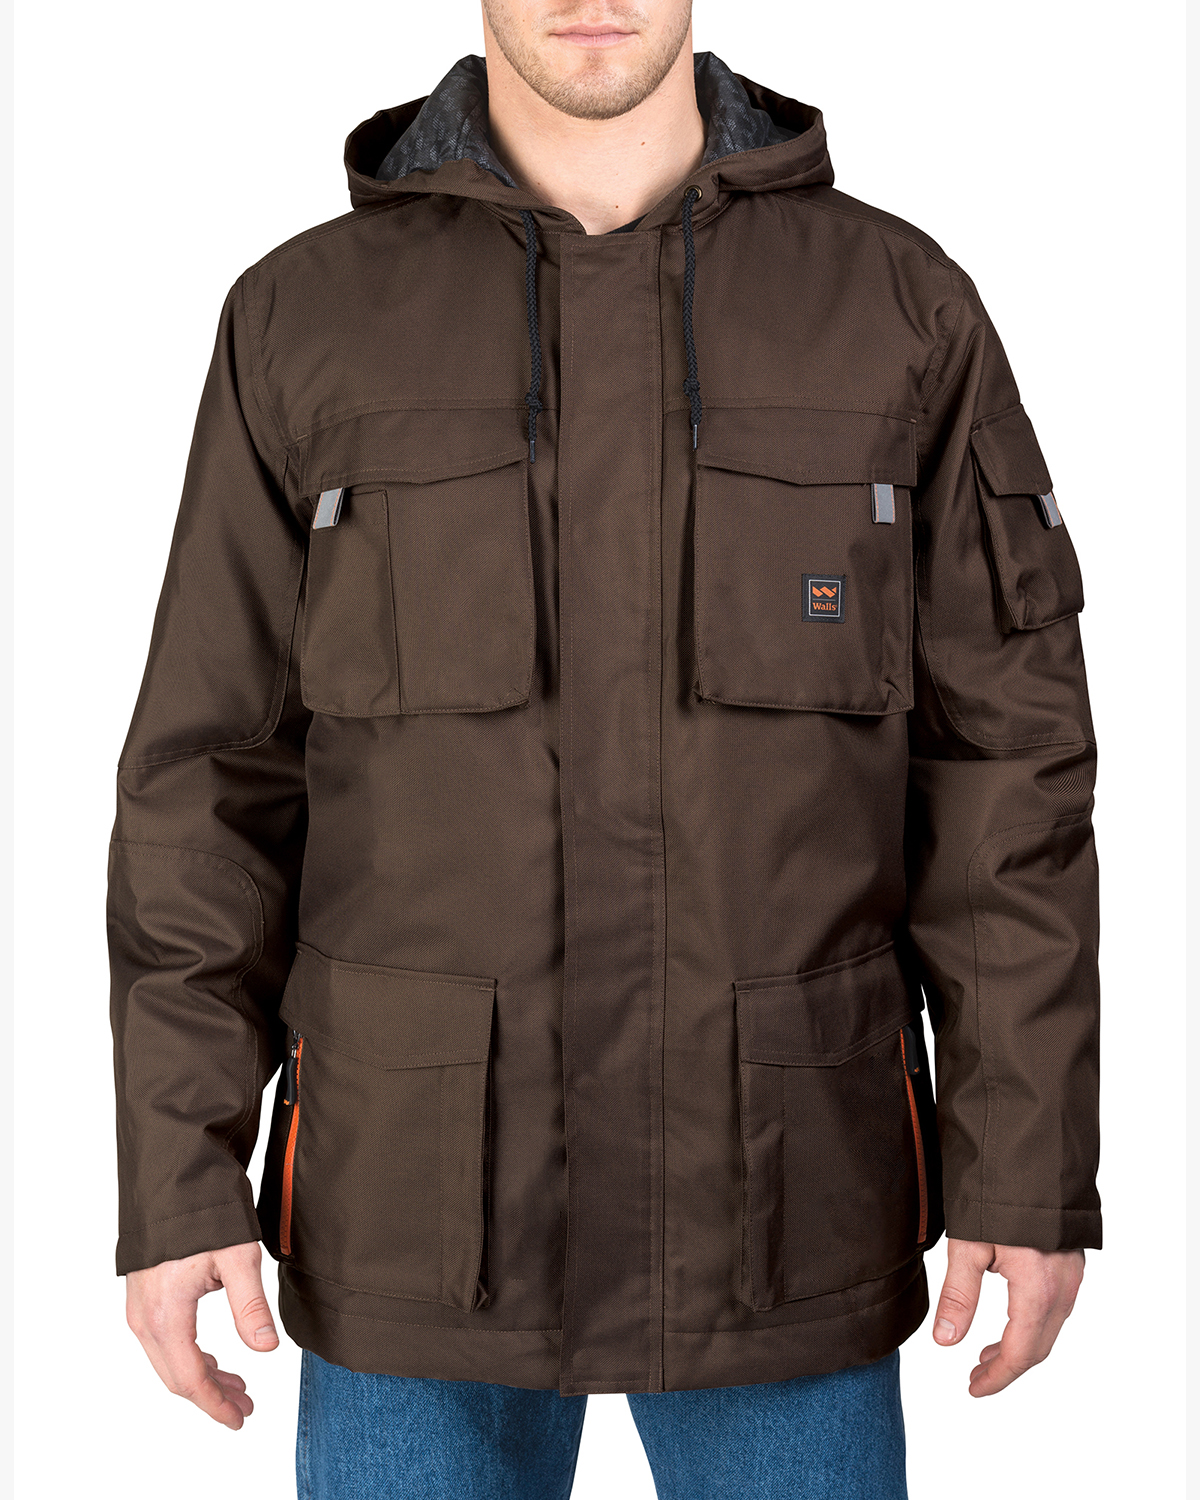 Walls Outdoor YC299 - Men's Modern Work Cut & Shoot ...